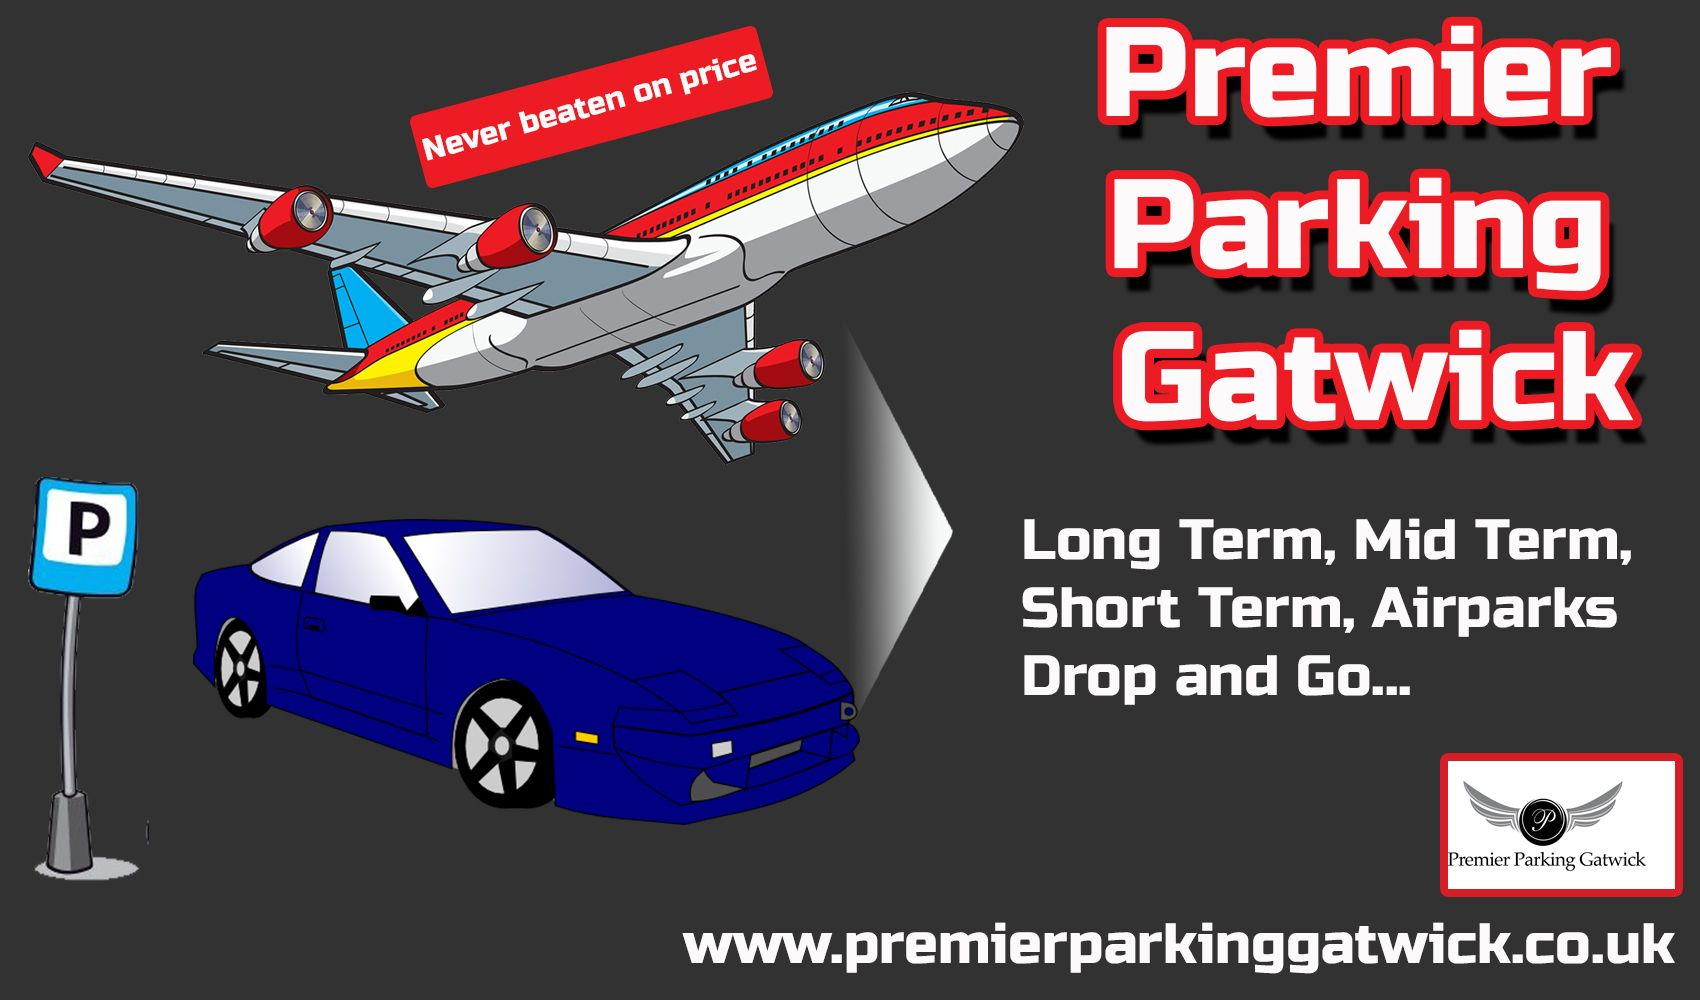 Premier parking gatwick premier valet parking pinterest premier parking provides safe and secure airport parking near gatwick airport book online and secure your cheap holiday airport parking now kristyandbryce Images